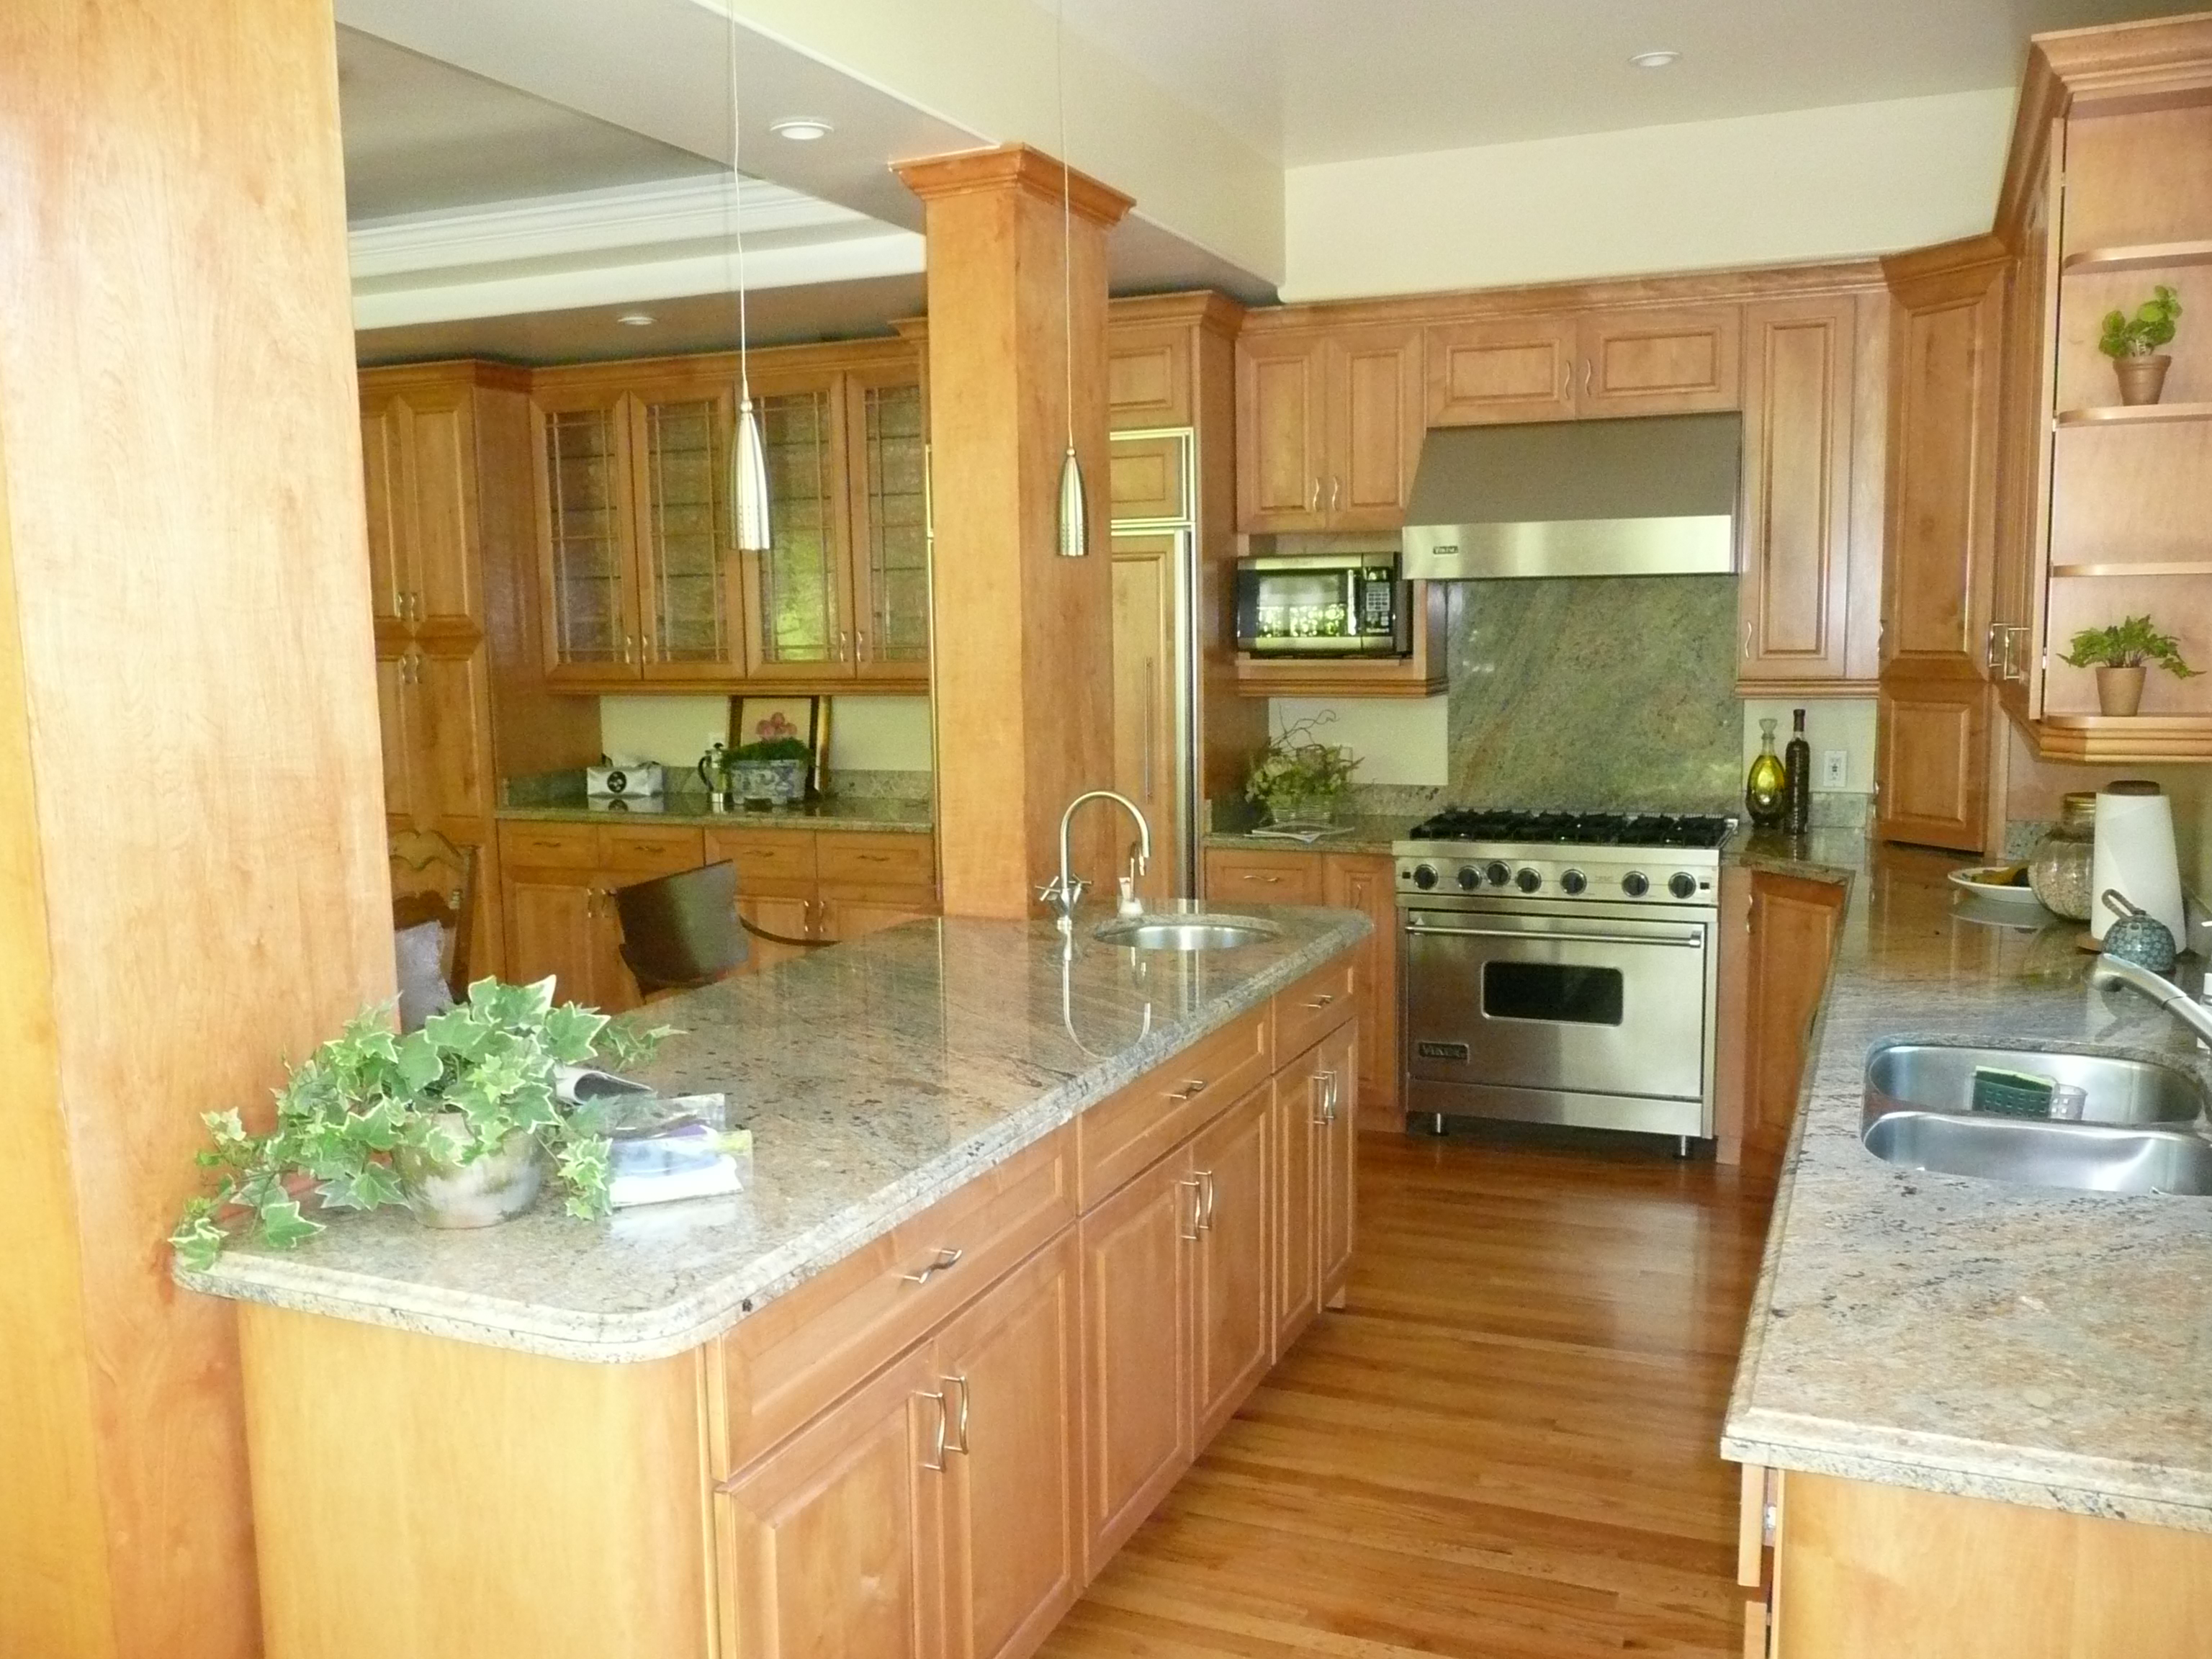 Kitchen Designs And Colors Images Feng Shui Kitchen Feng Shui Kitchen Colors Home Buyers And Yang